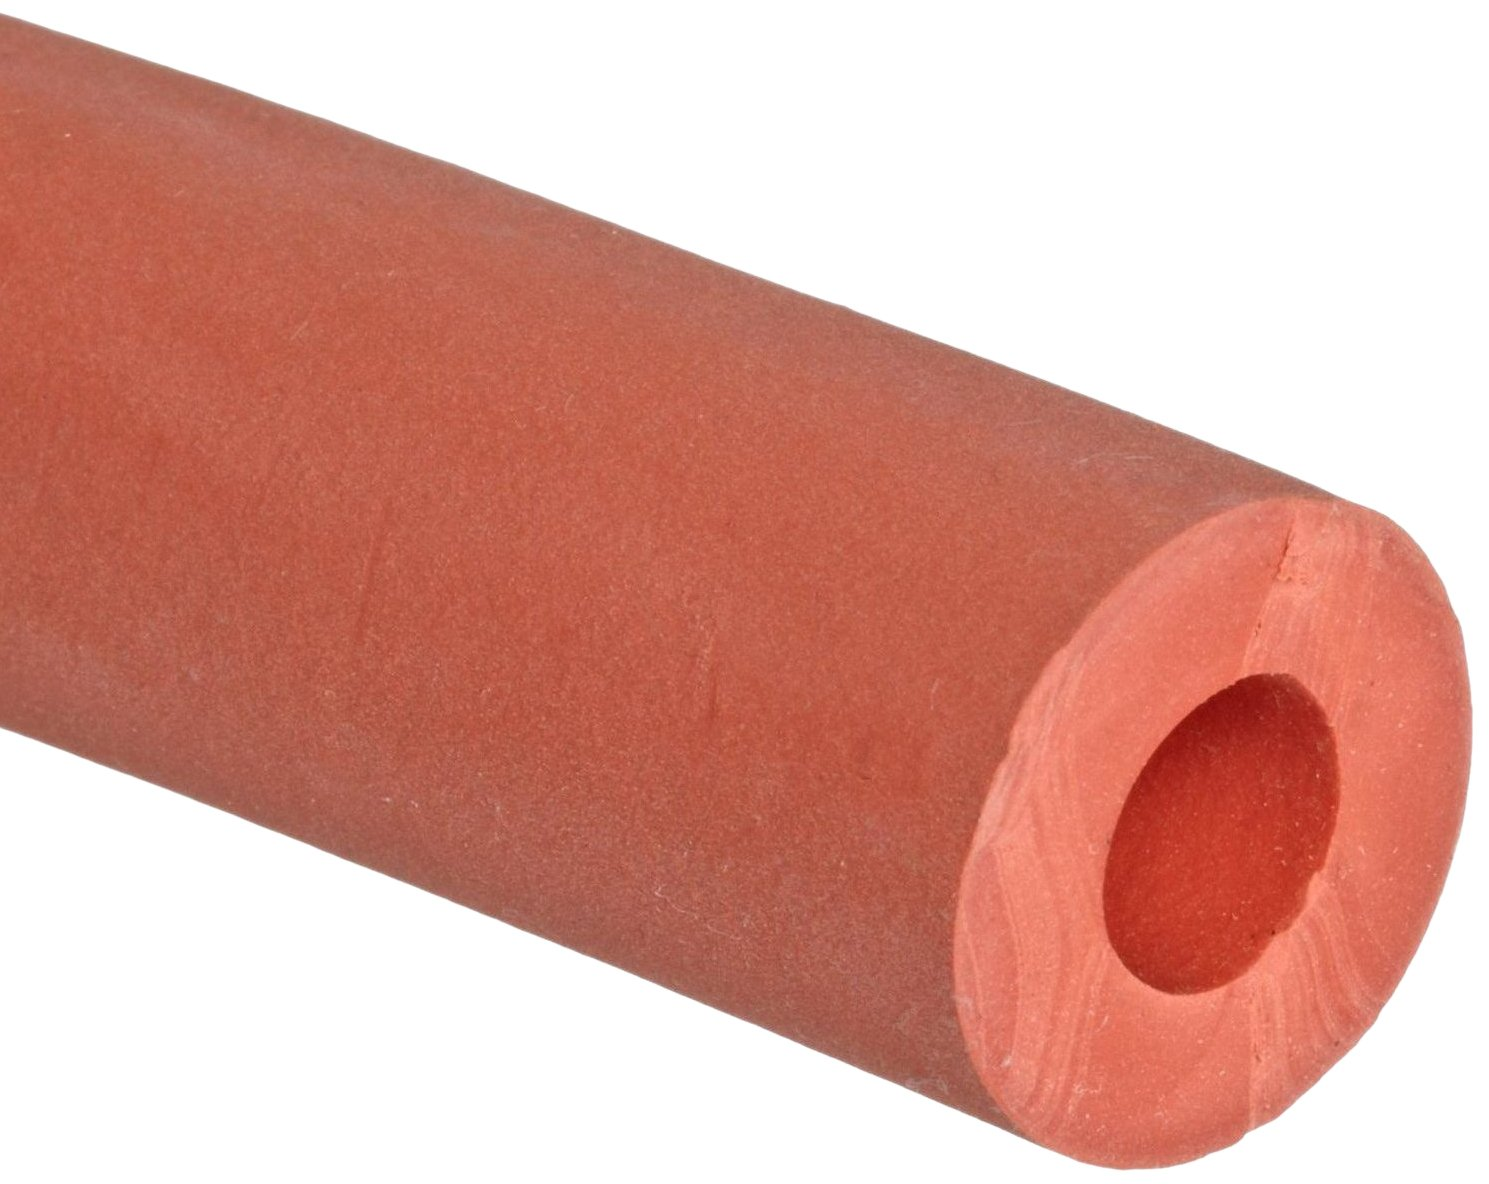 Thomas 1889 Gum Rubber Red Extruded Vacuum Tubing, 1-1/2'' OD x 3/4'' ID x 3/8'' Wall Thick, 10' Length by Thomas